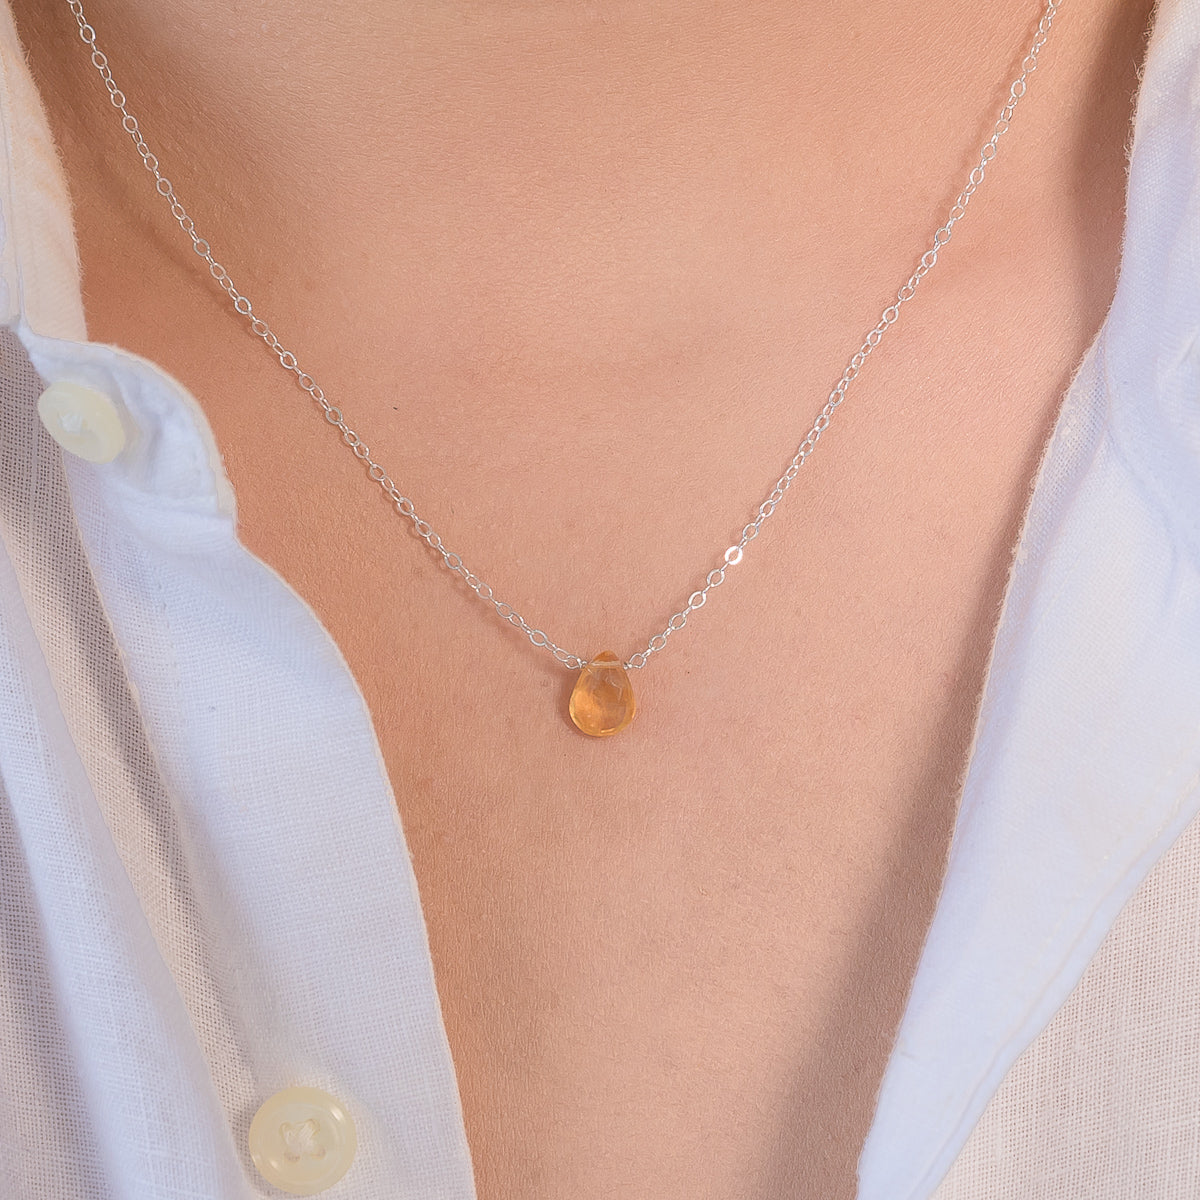 November Citrine Birthstone Necklace Liz.Beth Jewelry Co.